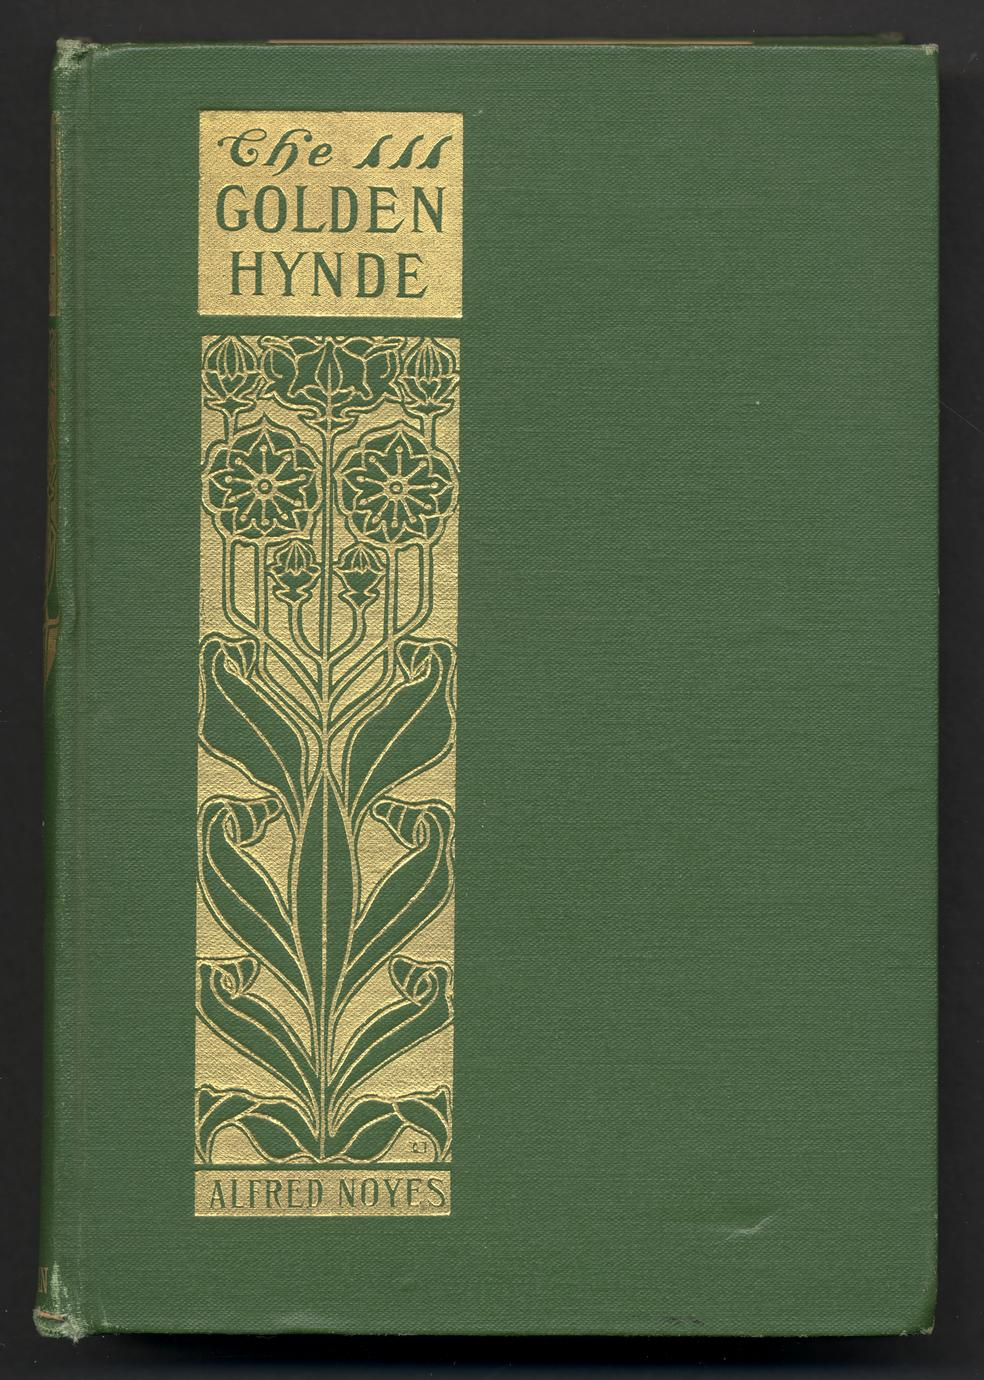 The golden hynde (1 of 3)